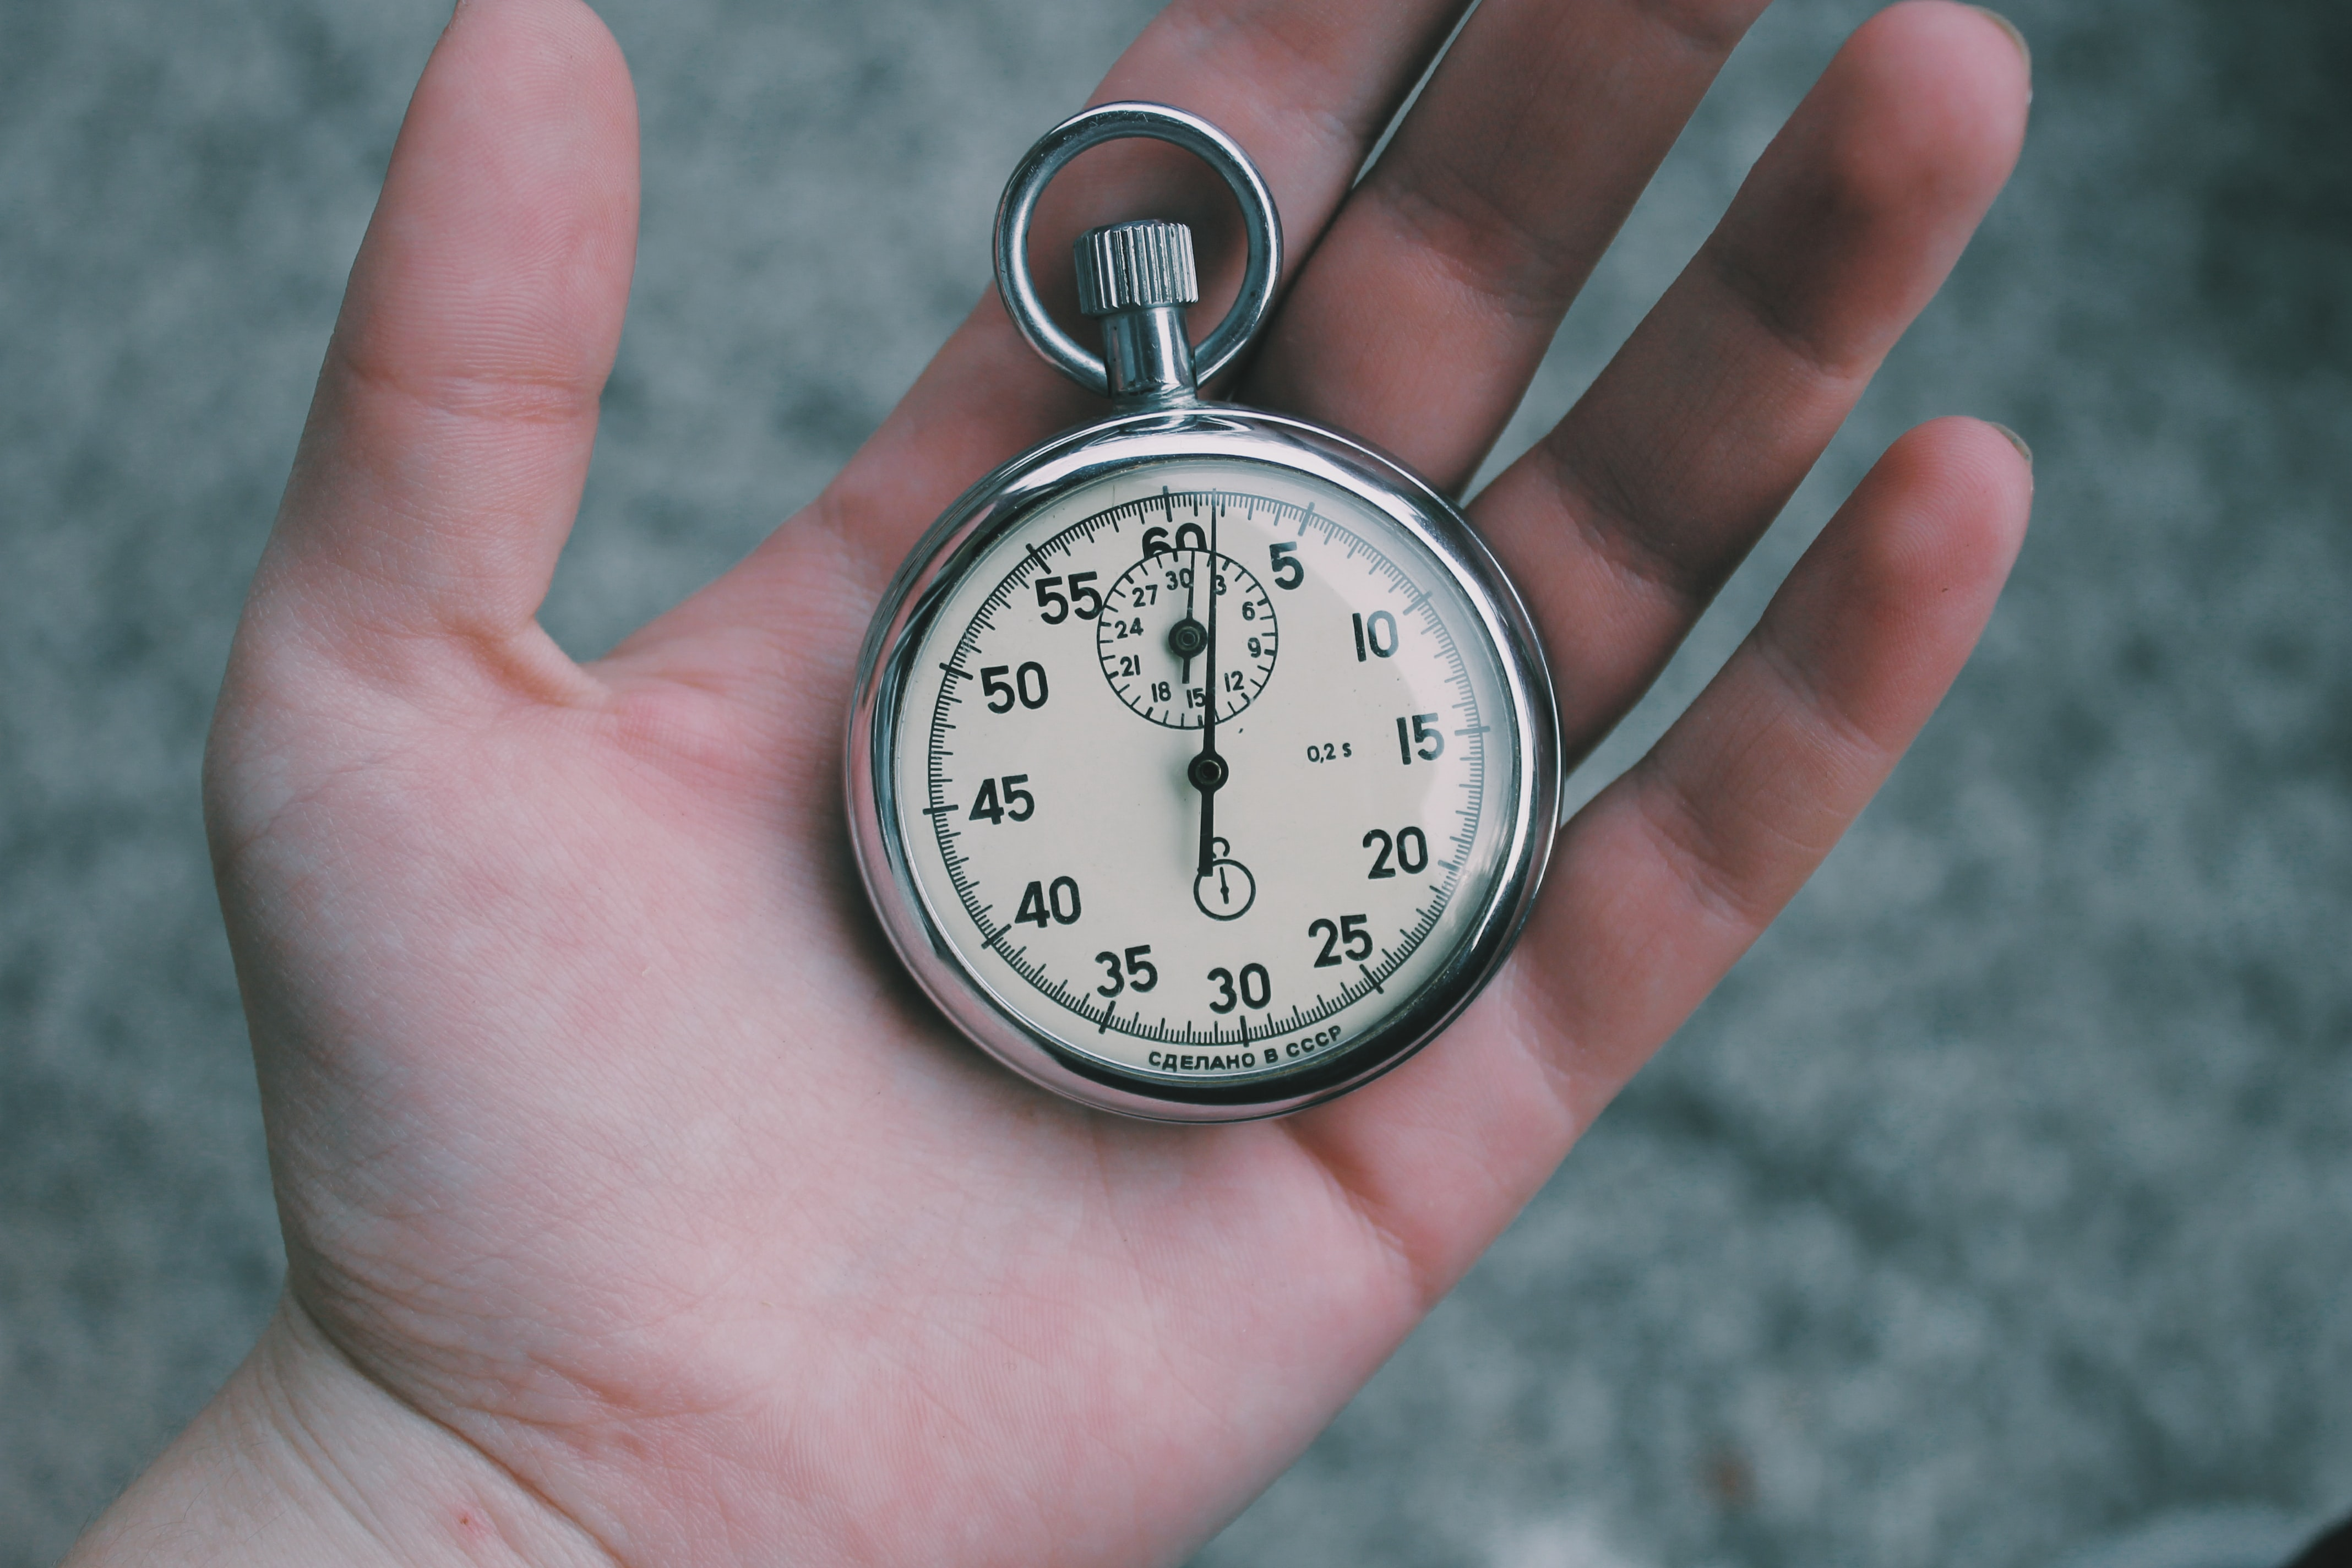 A pocket watch in a person's open hand